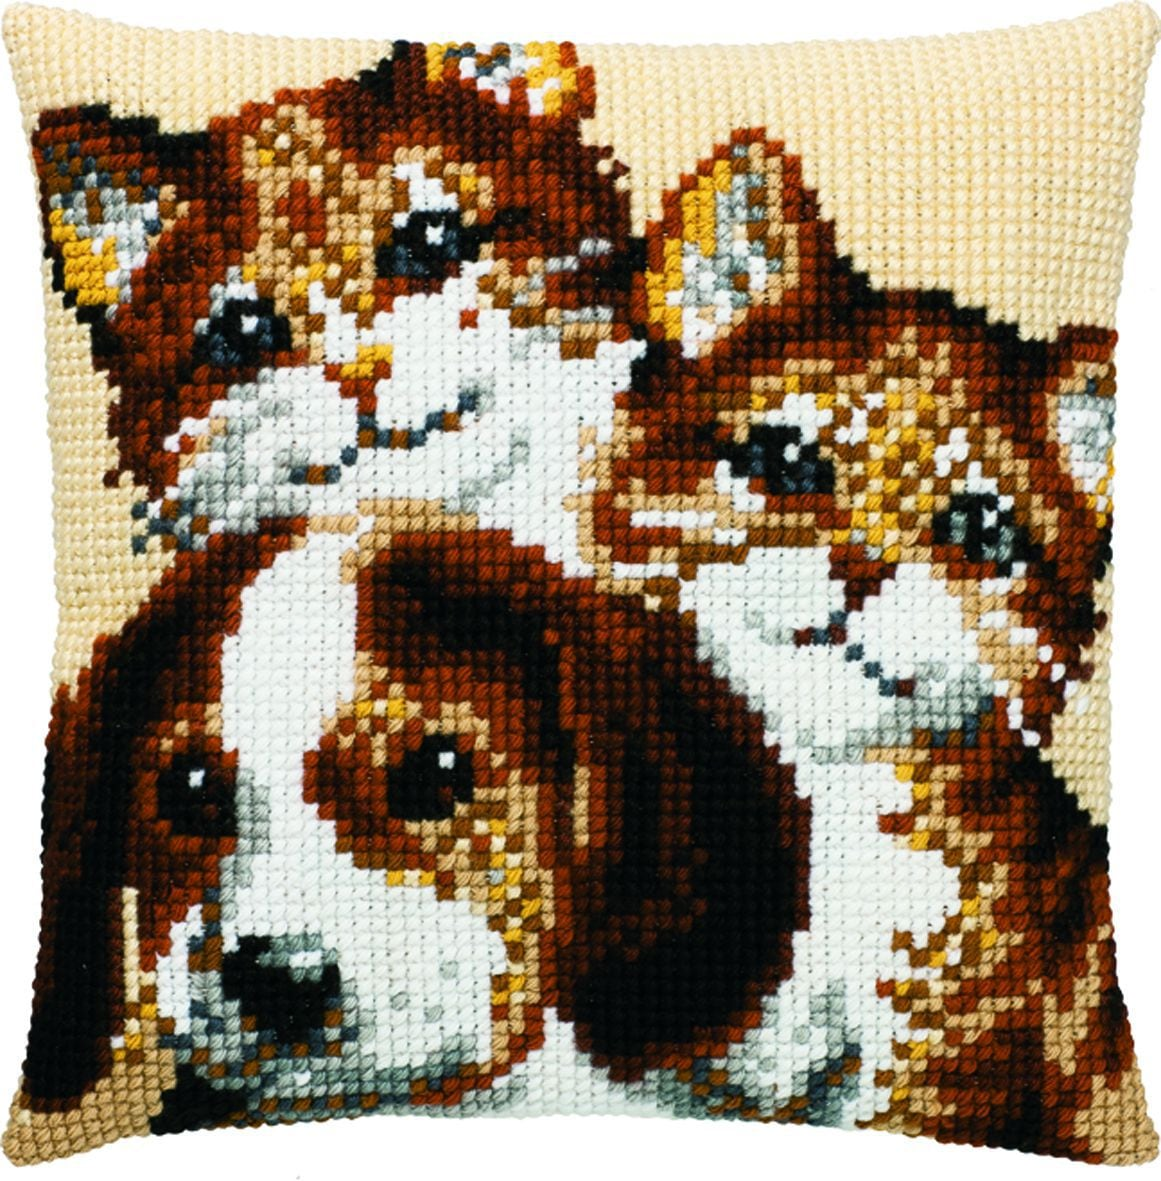 cross stitch cushion 2 cats and 1 dog printed